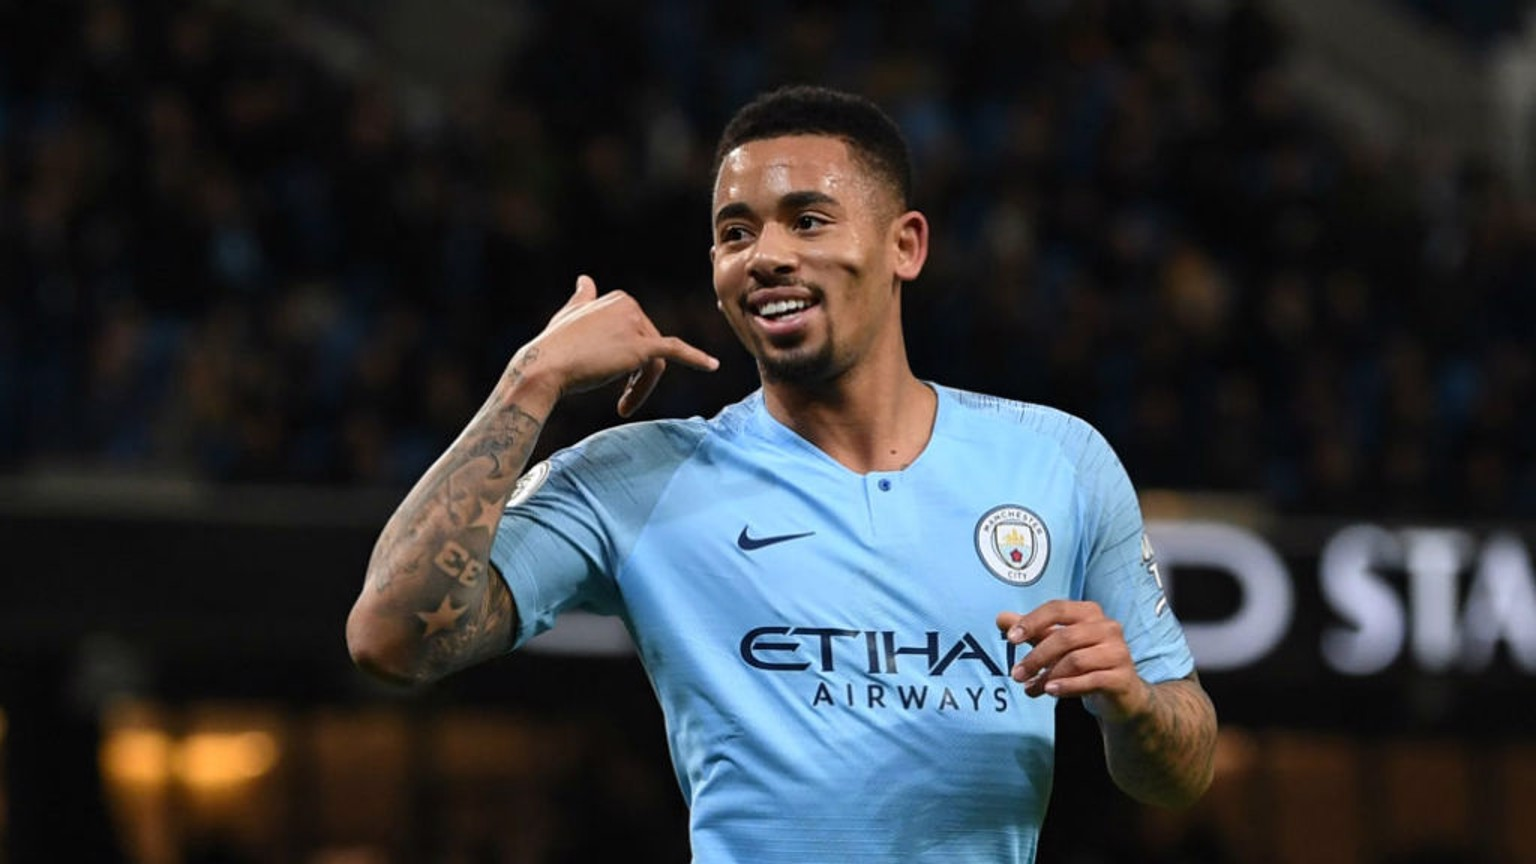 THE BOY ON FIRE: Gabriel Jesus celebrates scoring the opener against Wolves